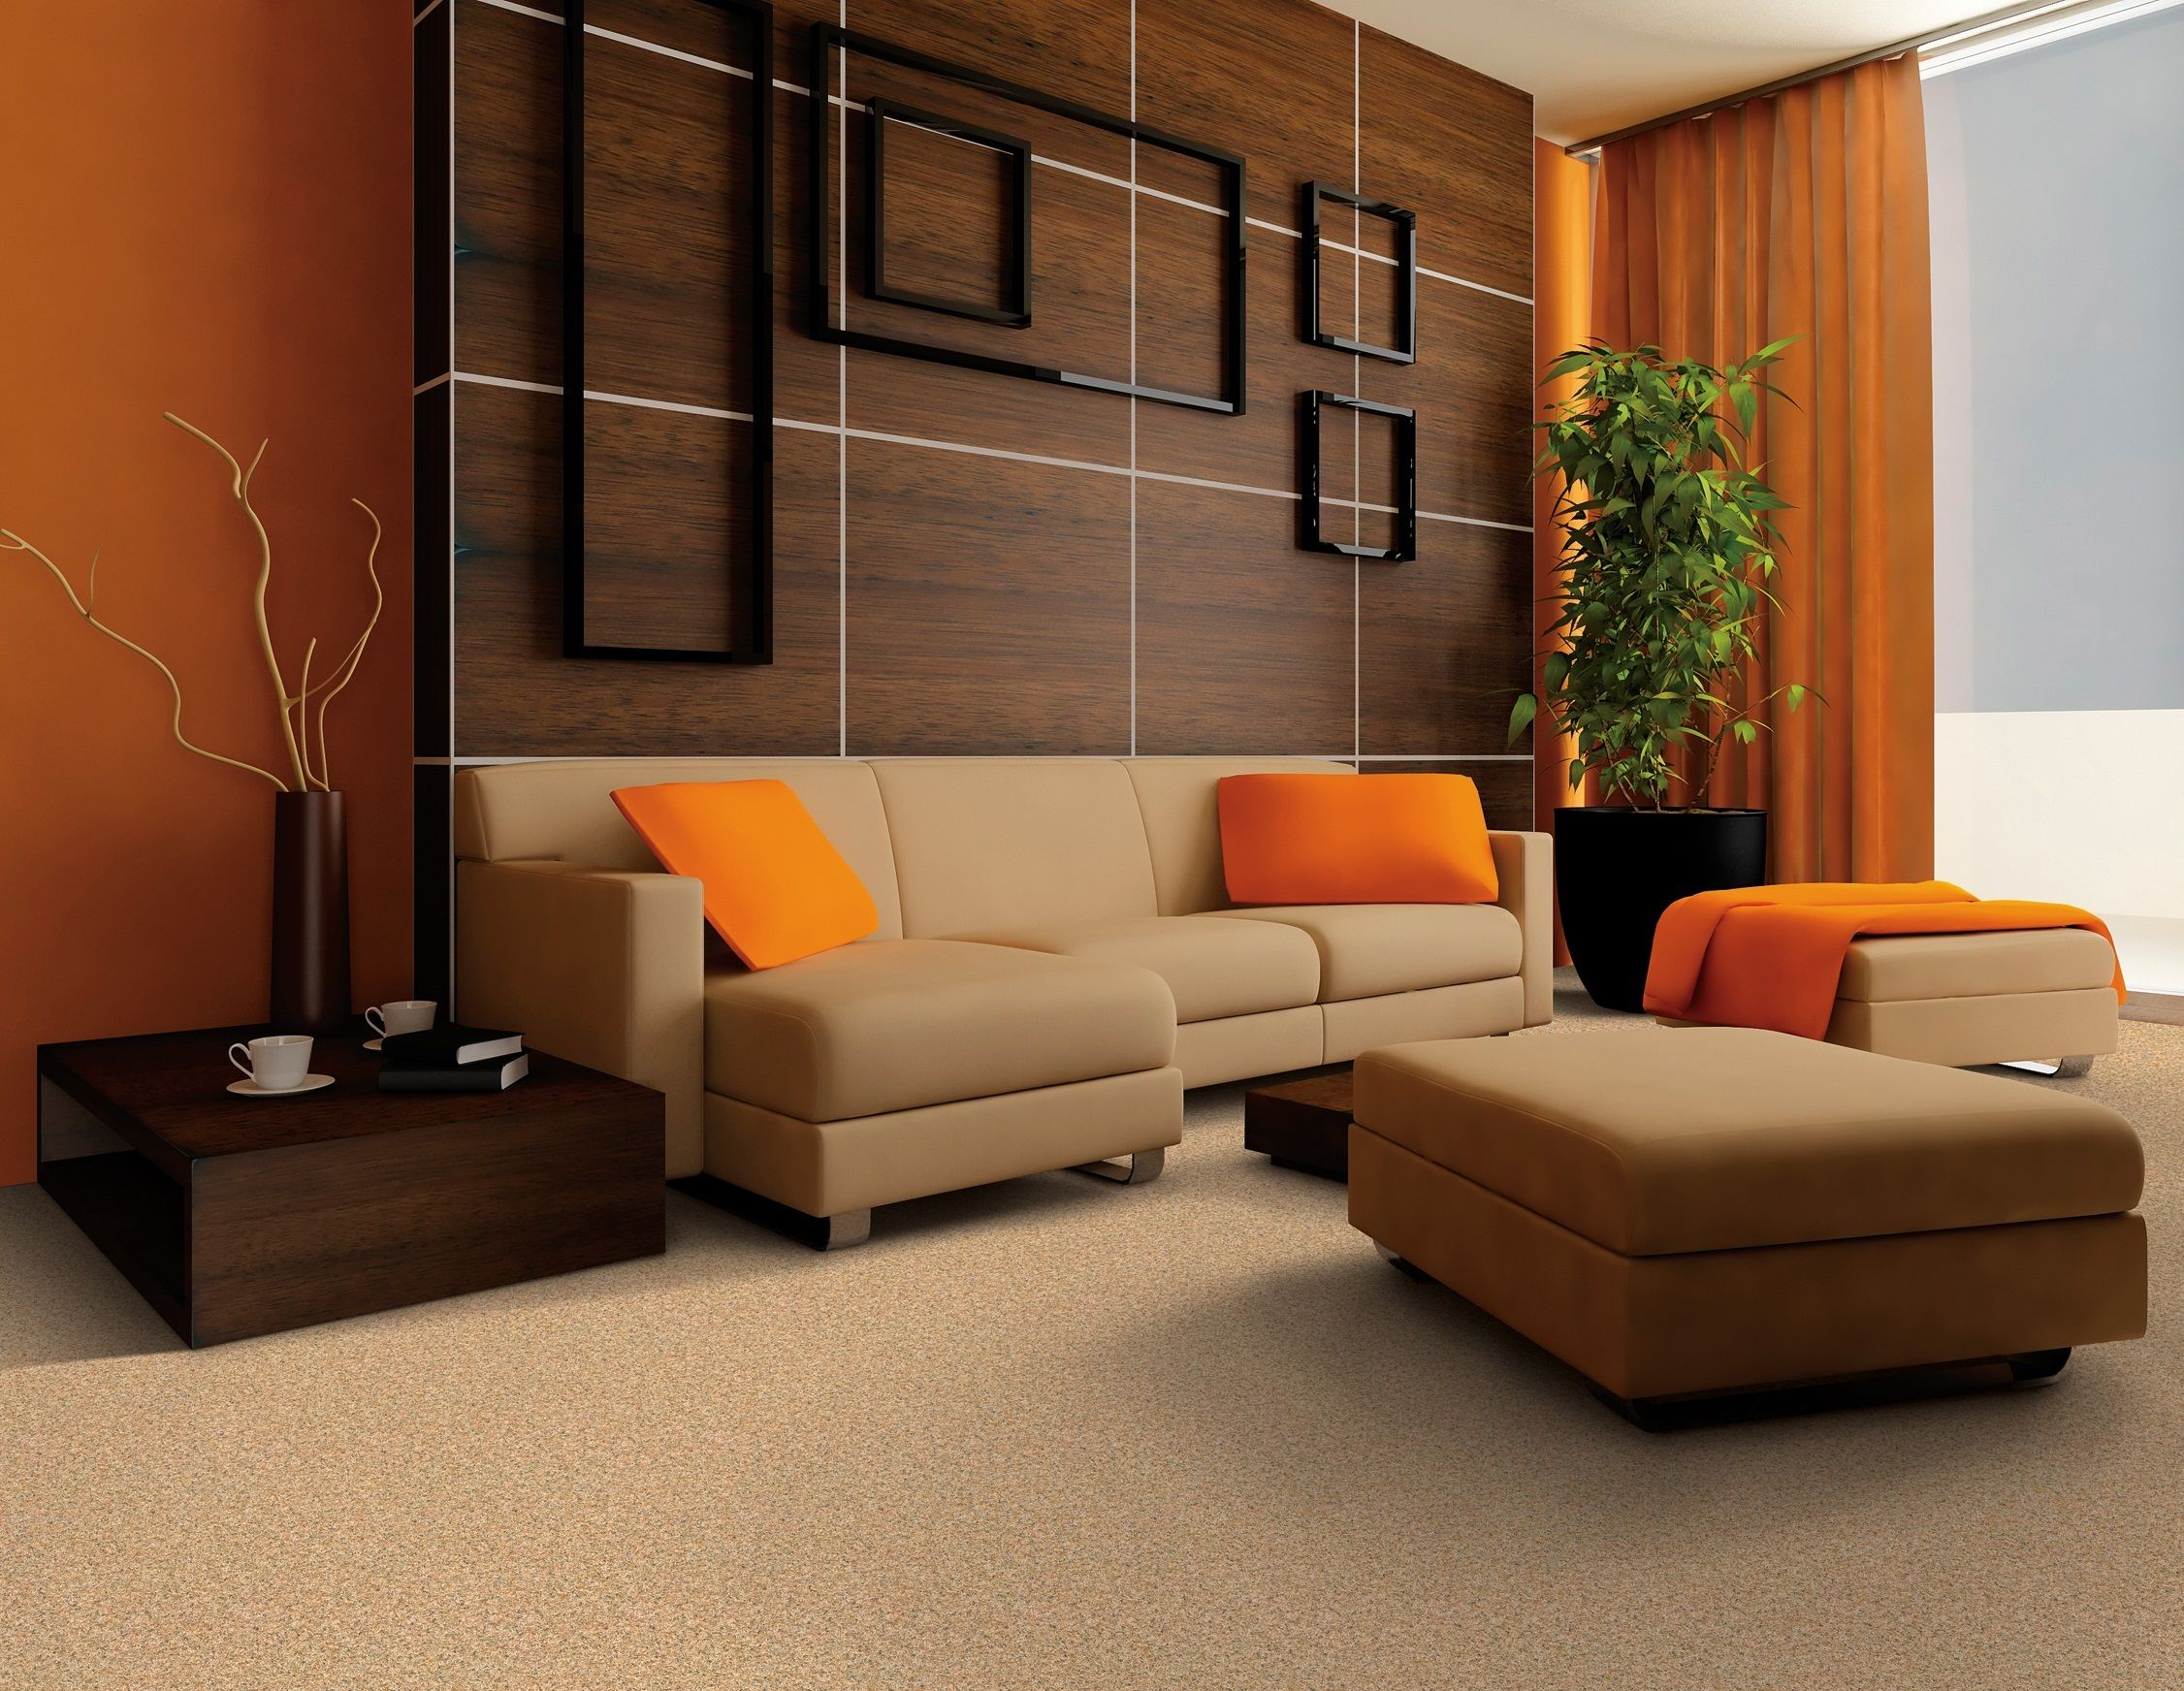 Living Room Decor Warm Colors warm color wall paint and brown shades sofa design ideas for